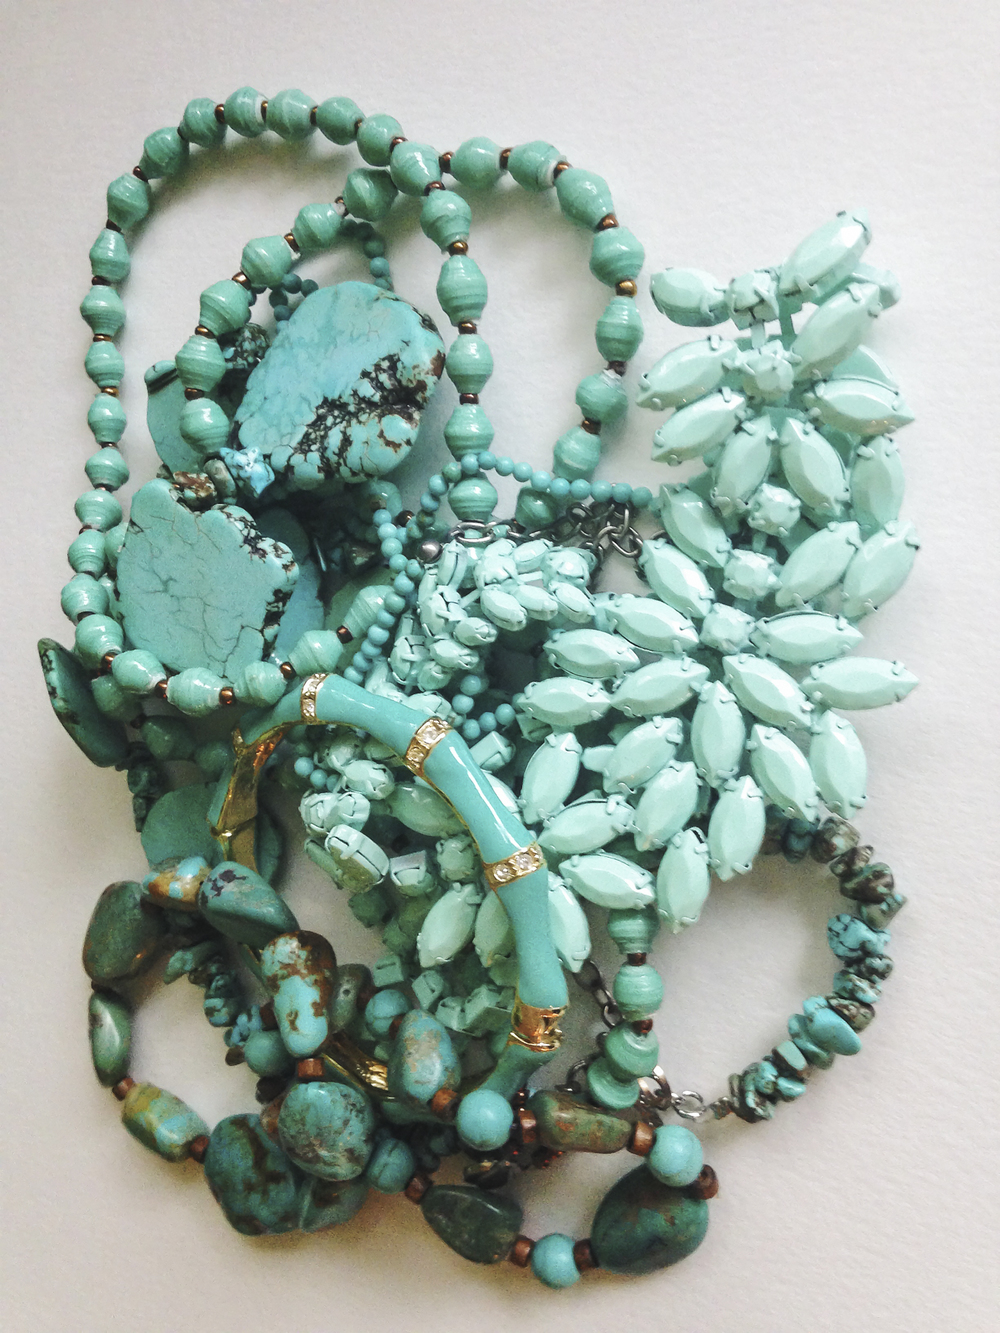 Susan Shepardson   - I love the color of turquoise. According to  Indian Arts and Culture  turquoise stands for water and for sky, for bountiful harvests, health and protection. Blue-green symbolizes creation and the hope for security and beauty.